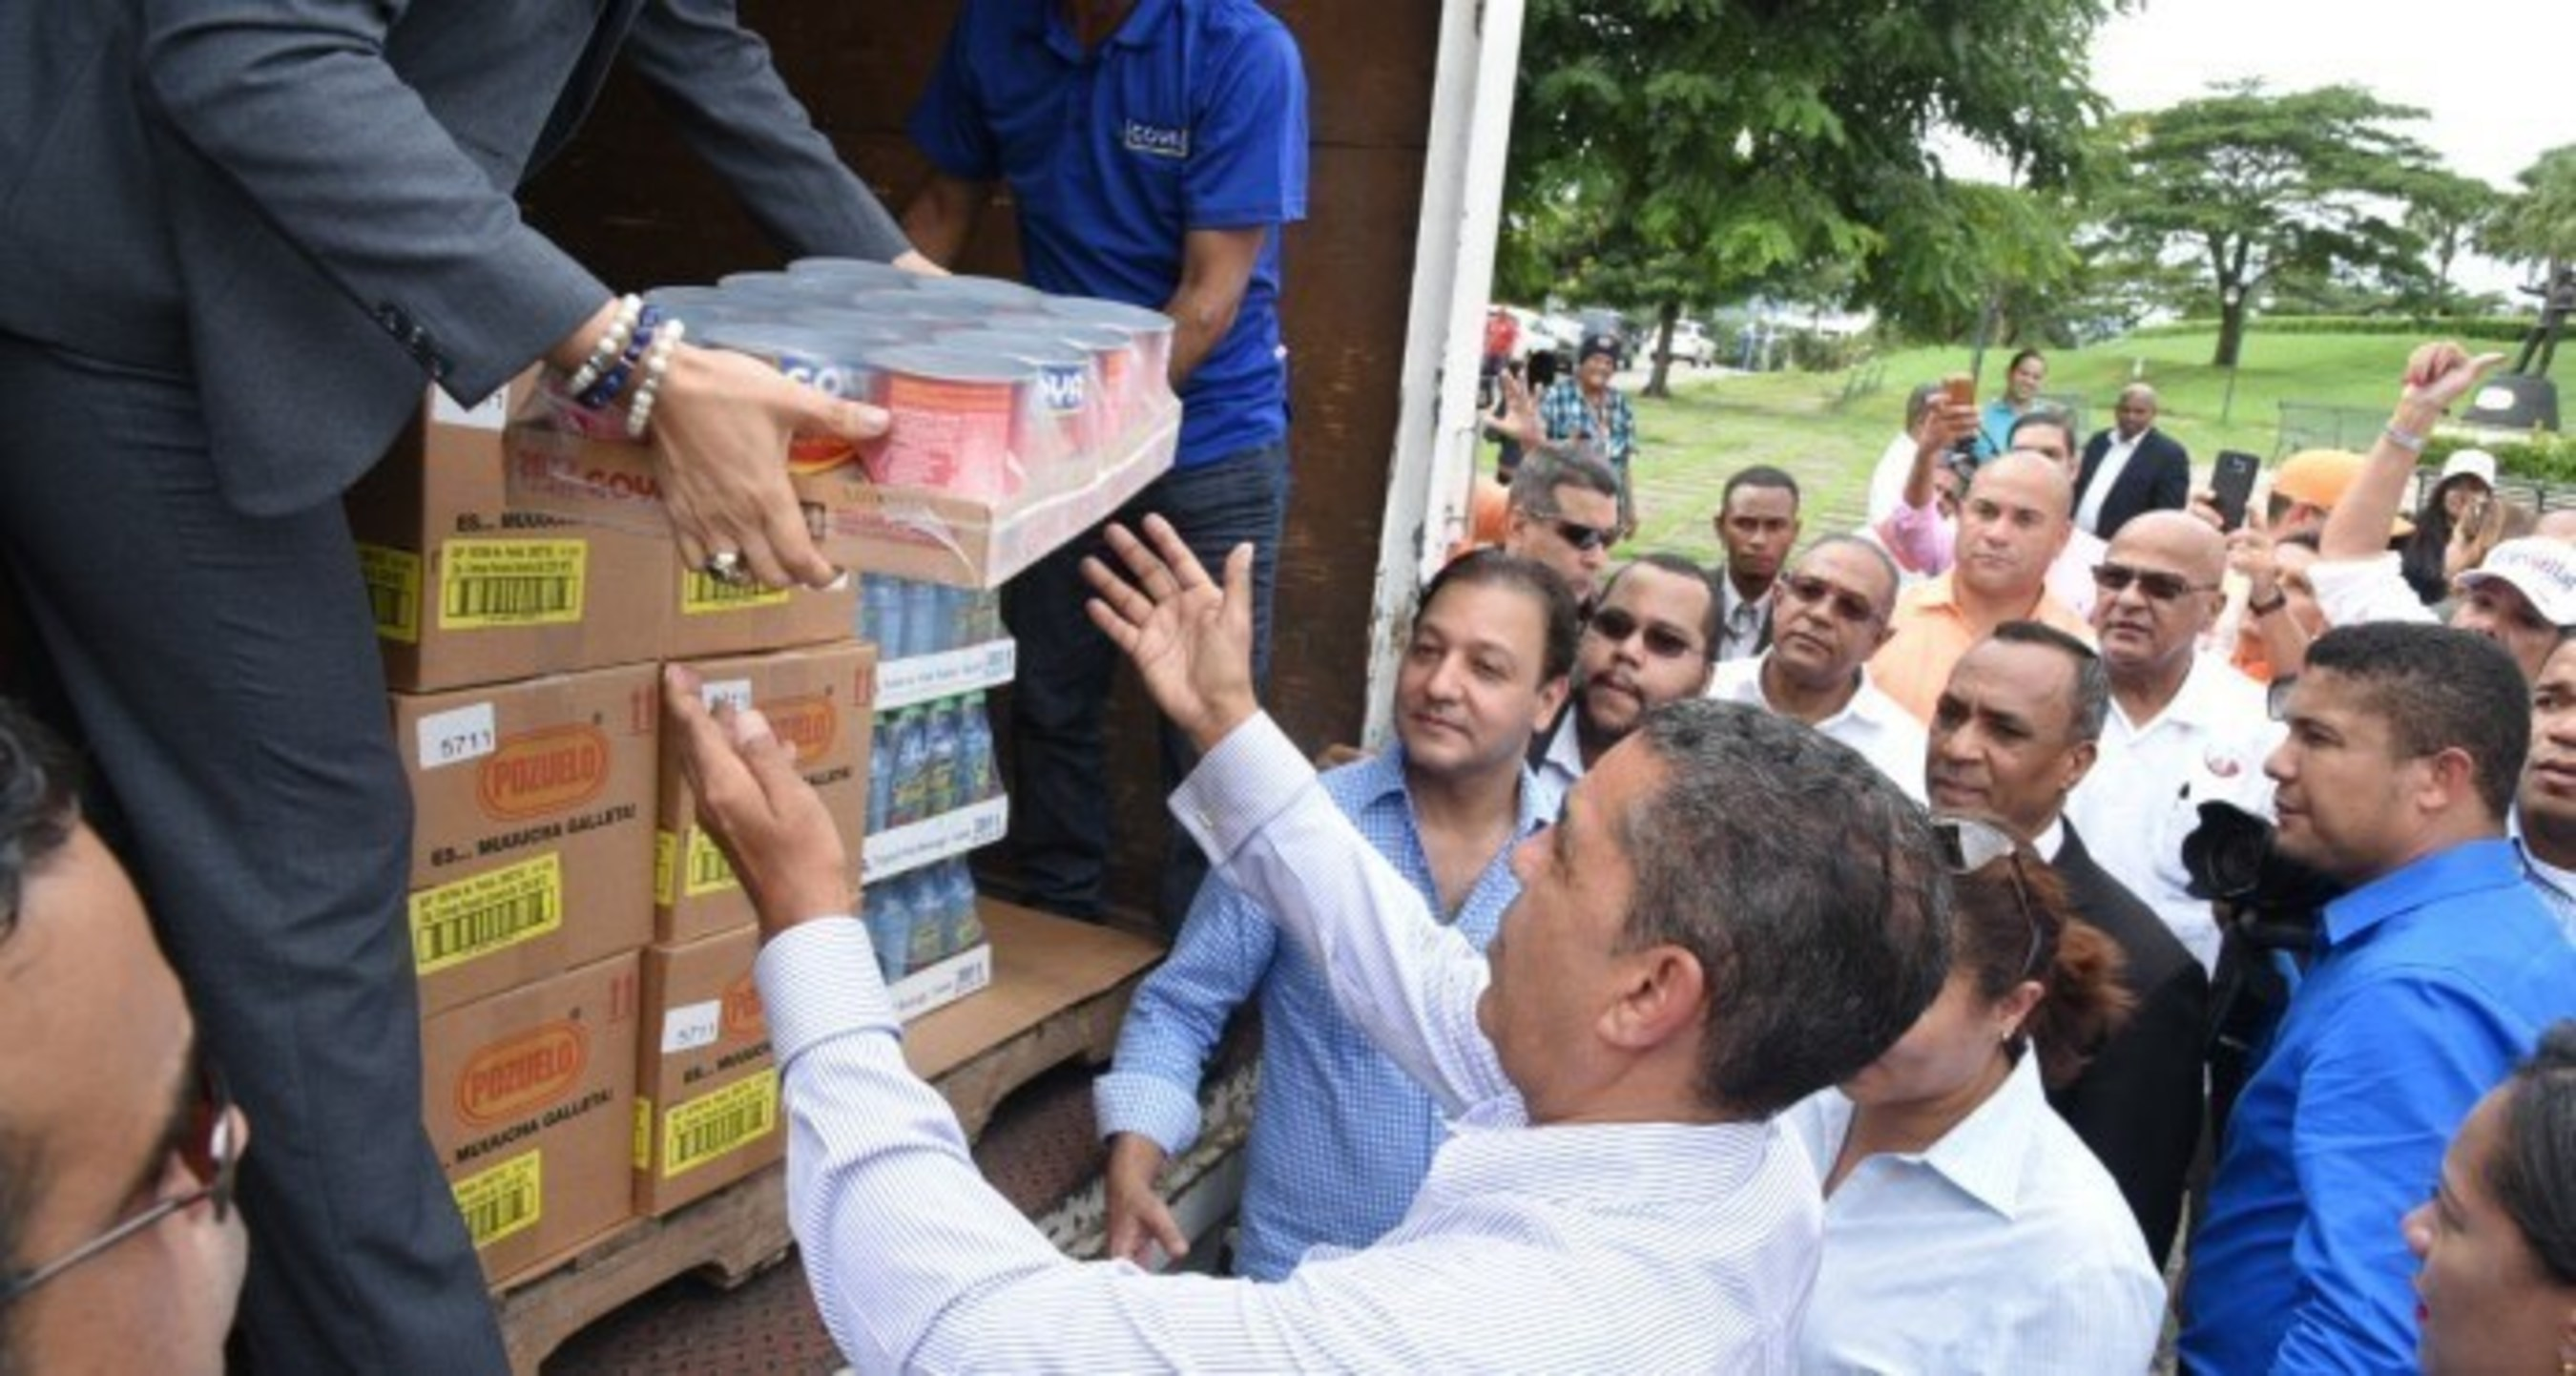 Goya Foods and U.S. Congressman Elect Adriano Espailliat Donated 10,000 Pounds Of Food To Victims Of The Floods In Dominican Republic.